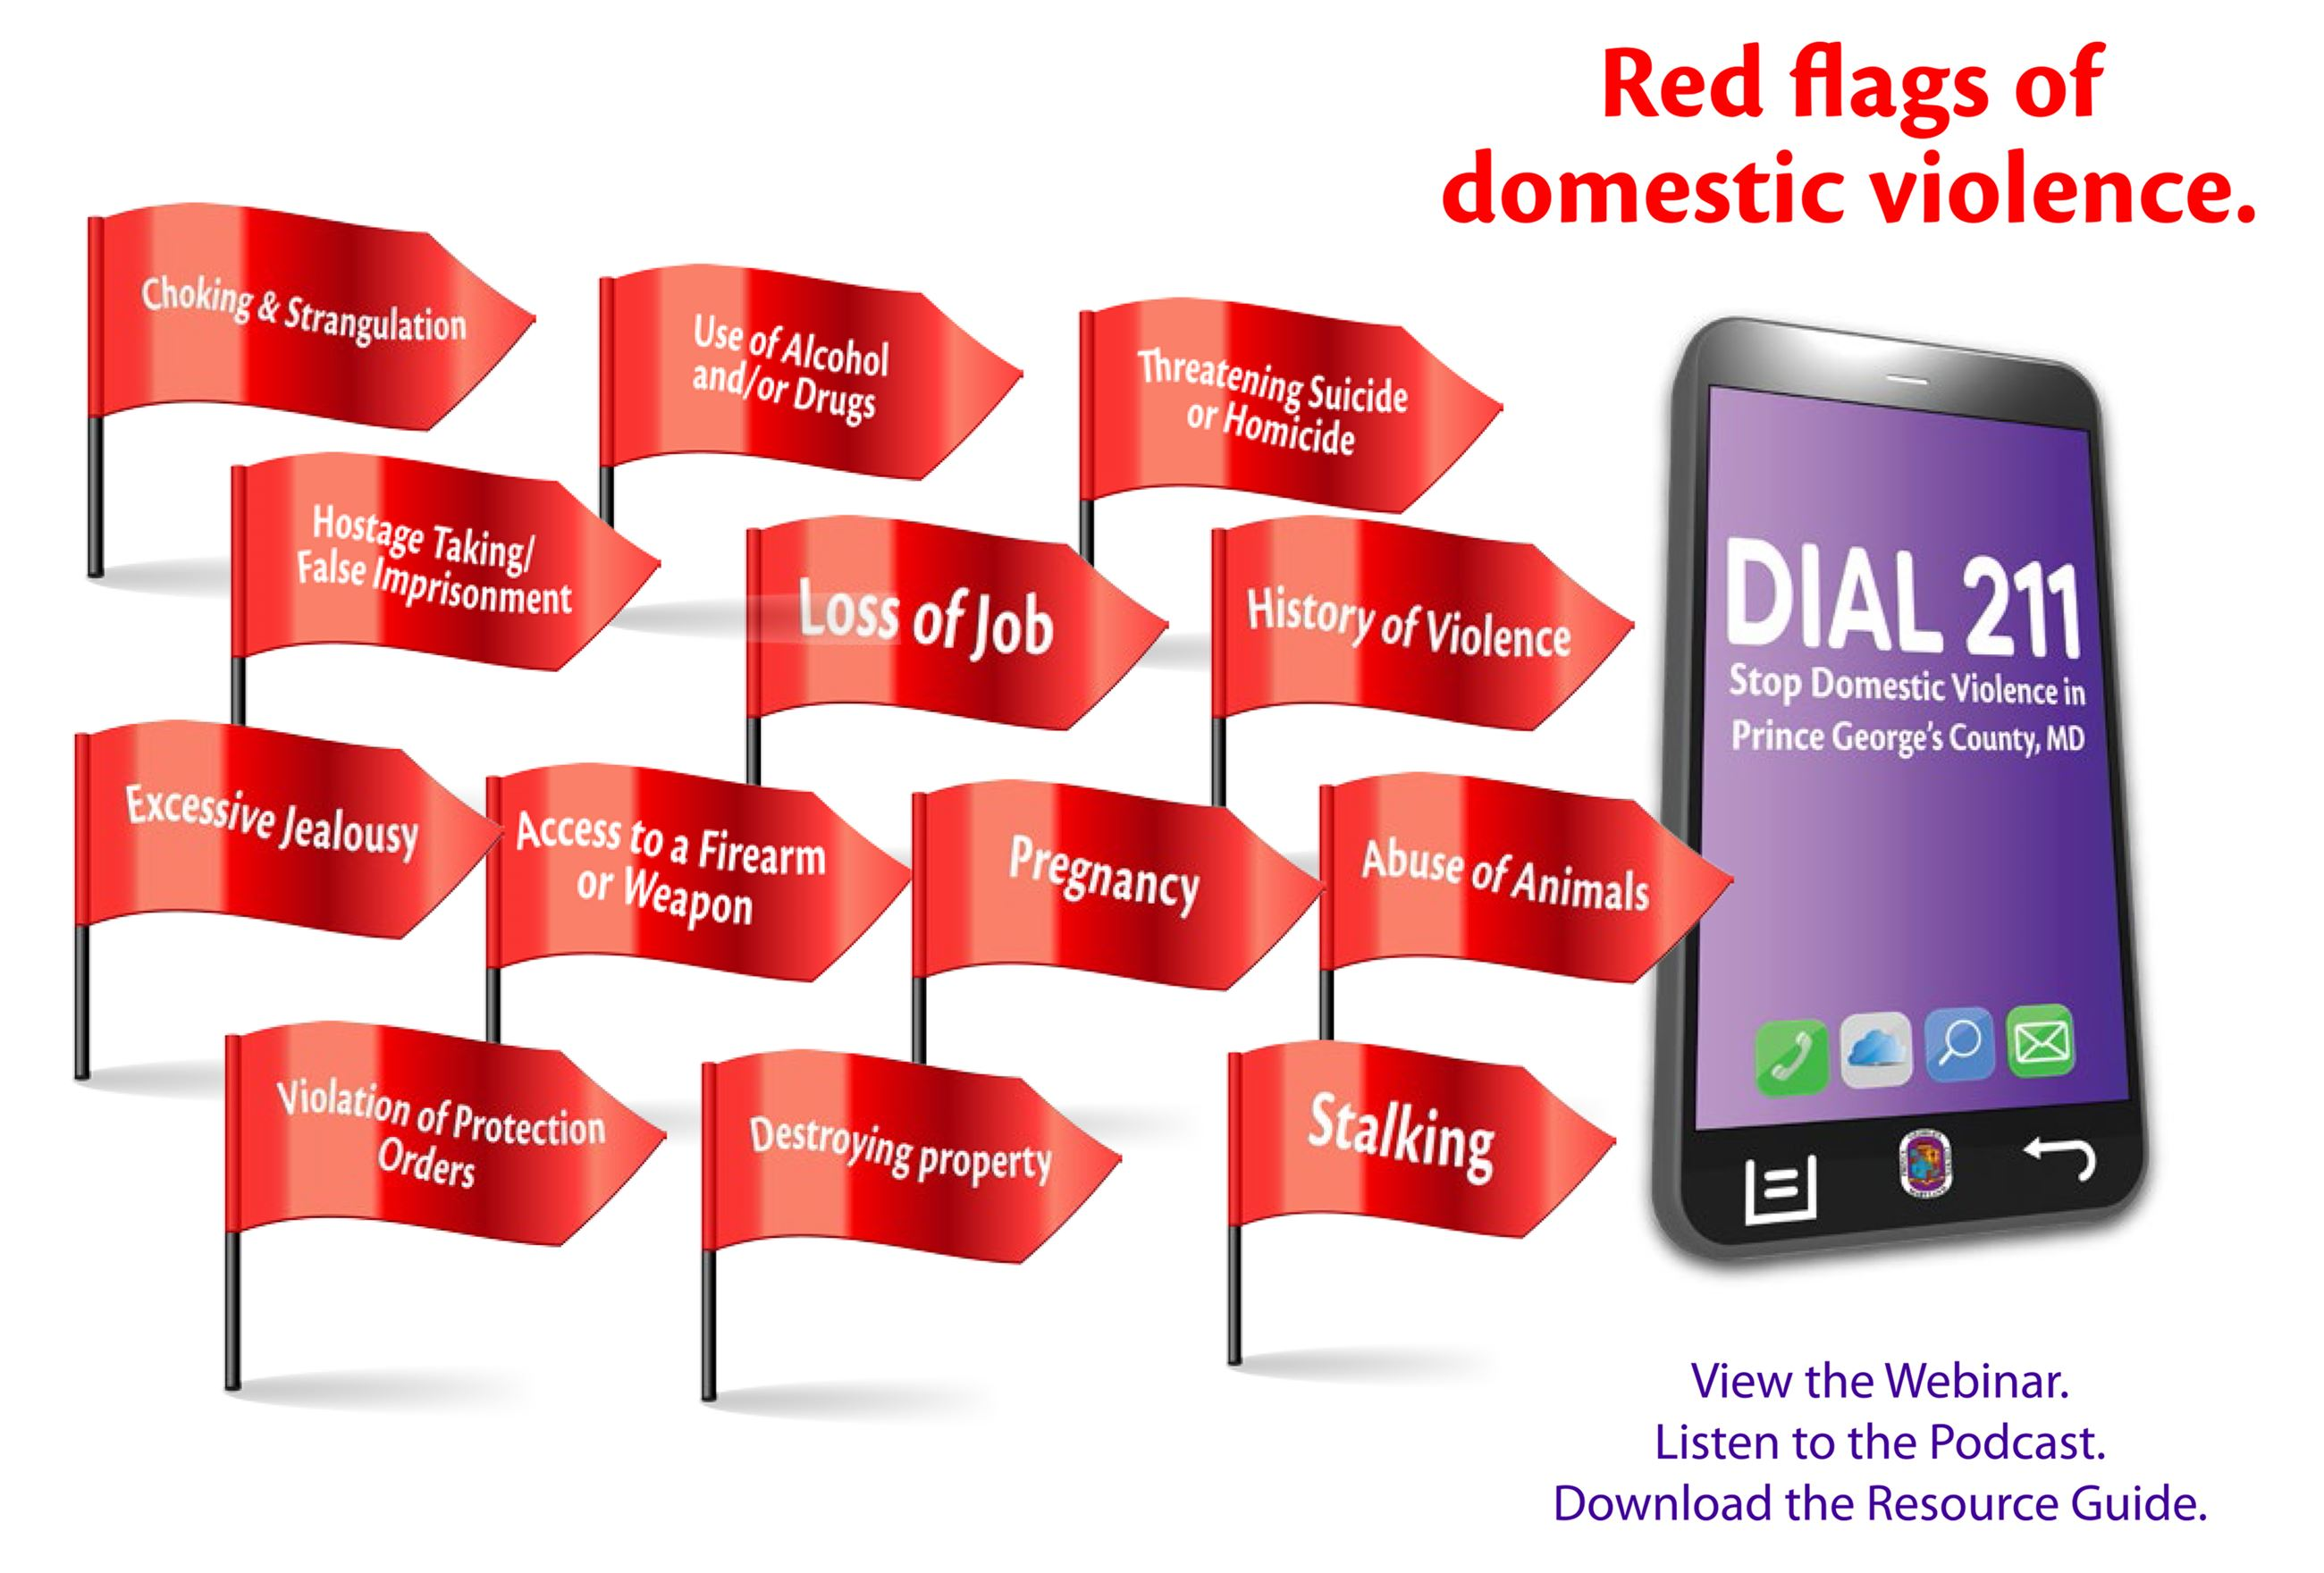 Red Flags of Domestic Violence